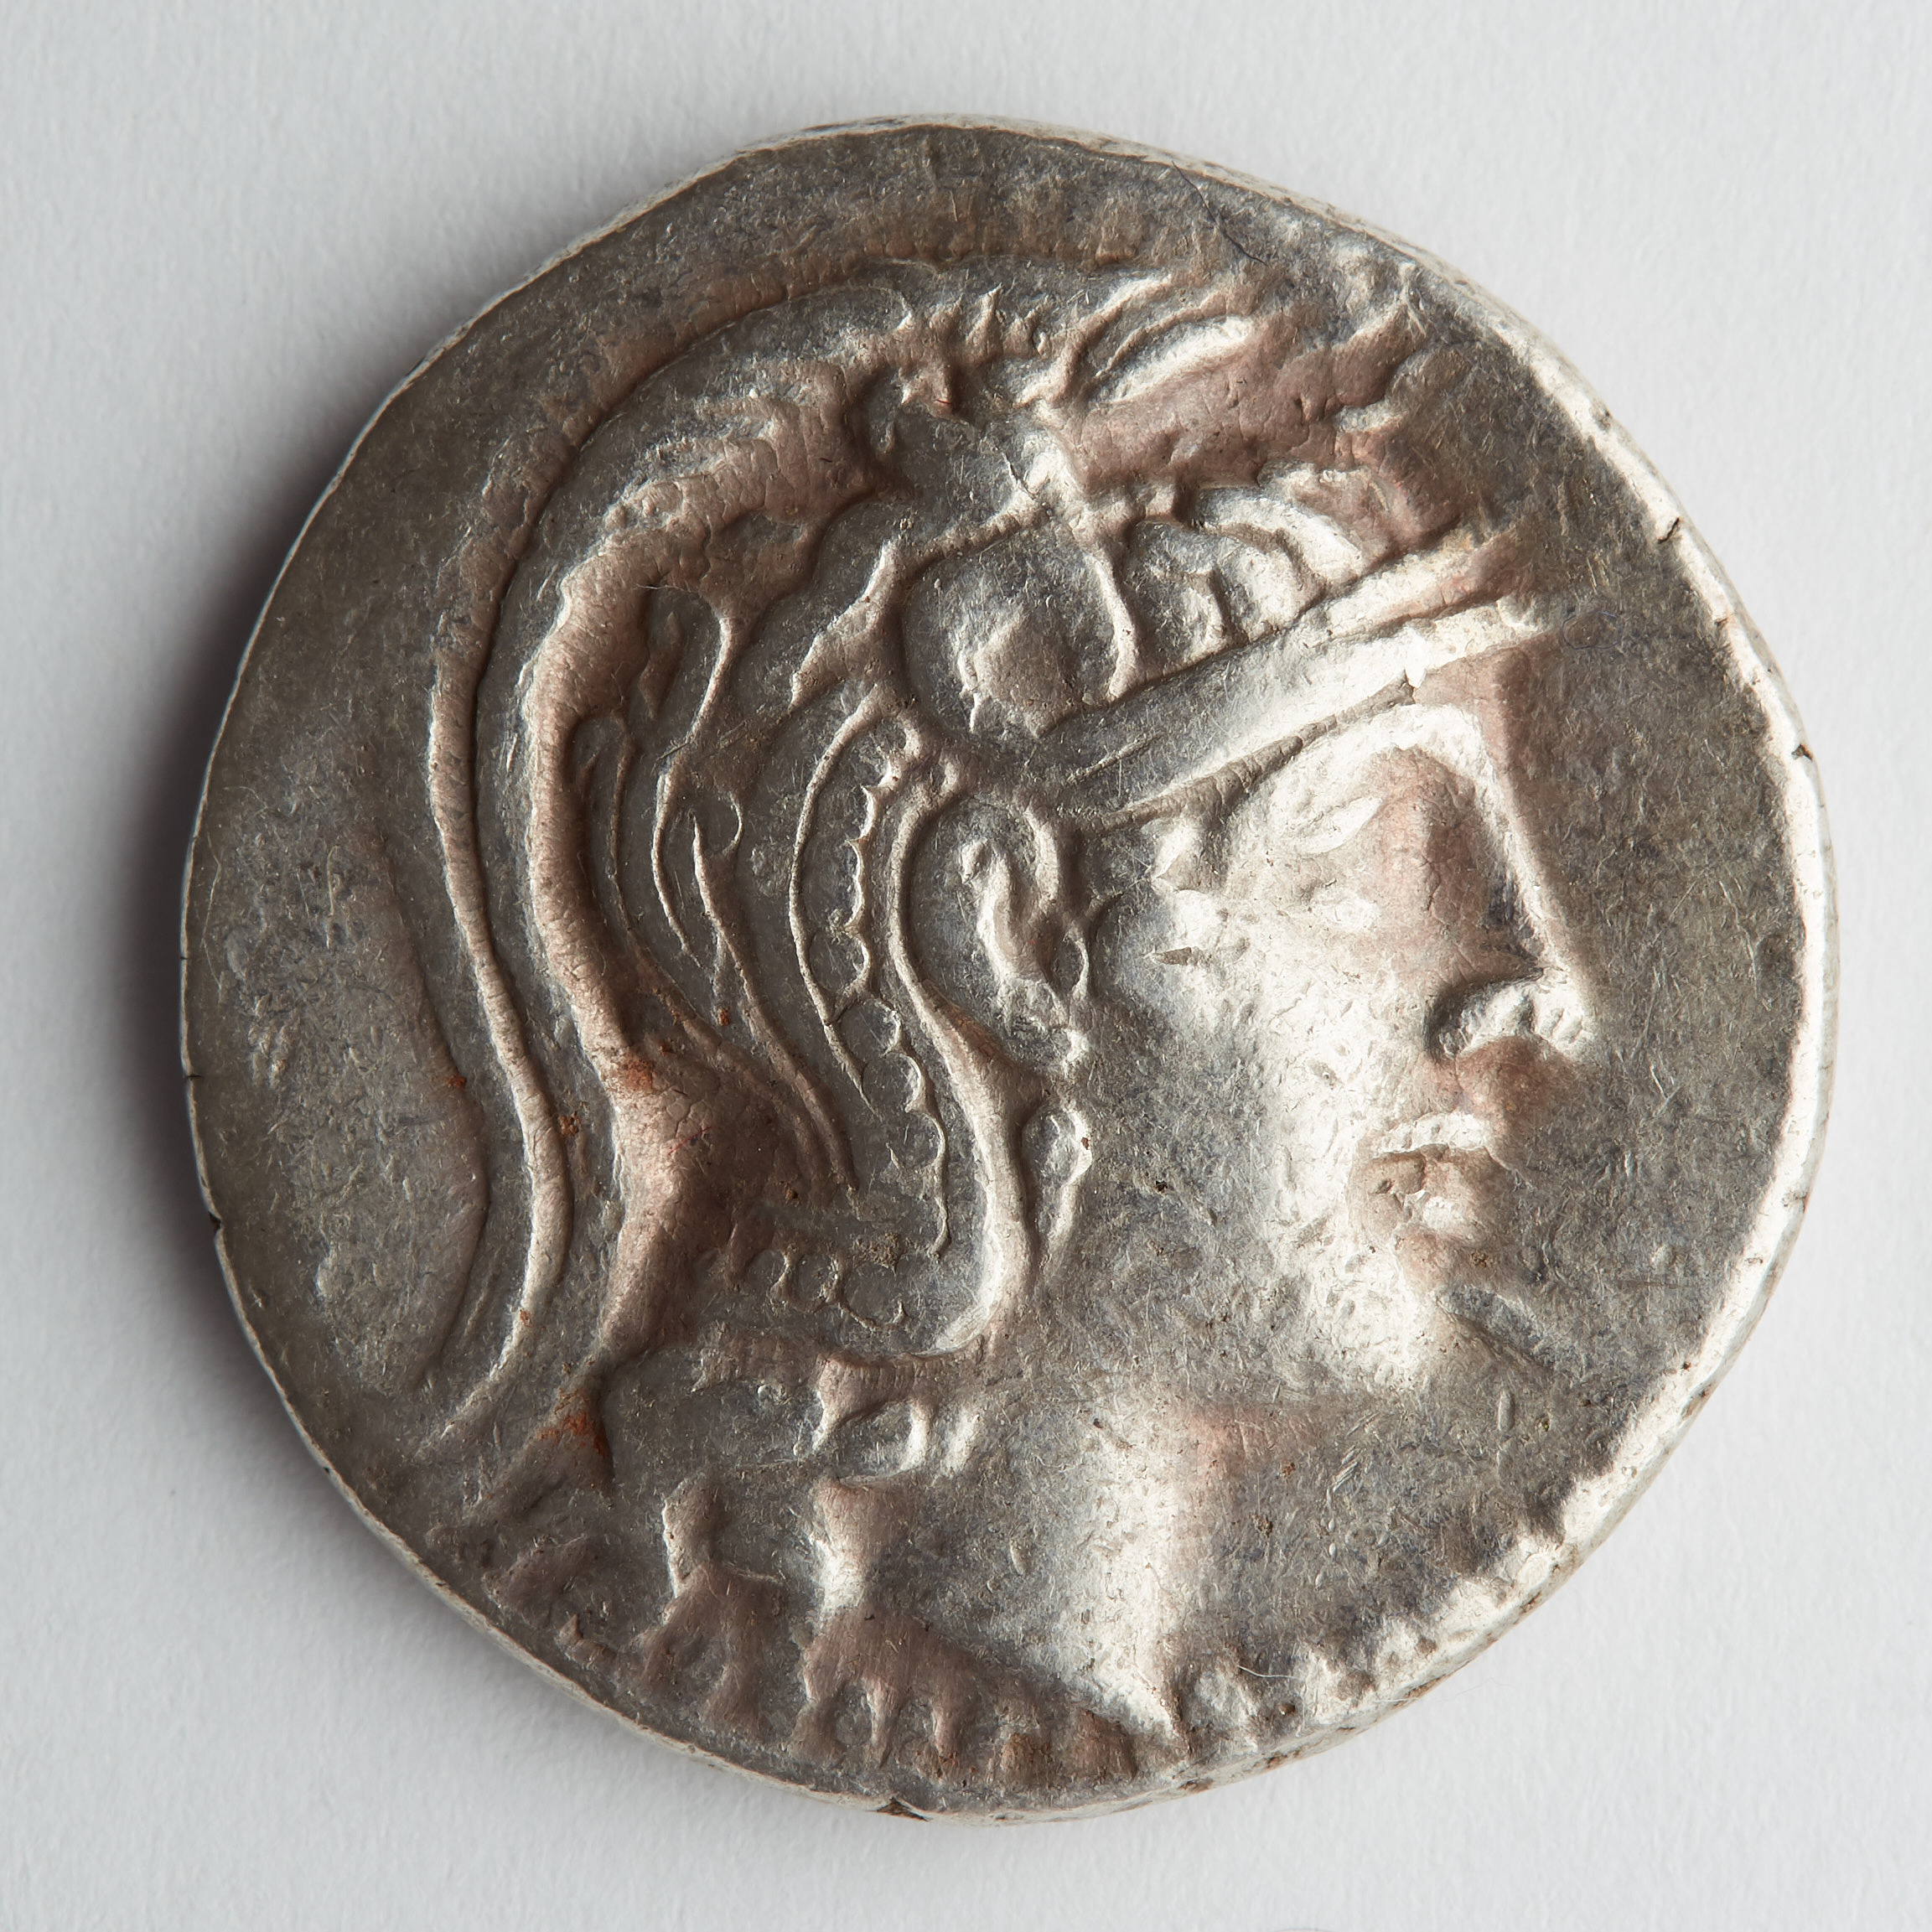 Lot 204: Ancient Greek Coin - Athenian Tetradrachm